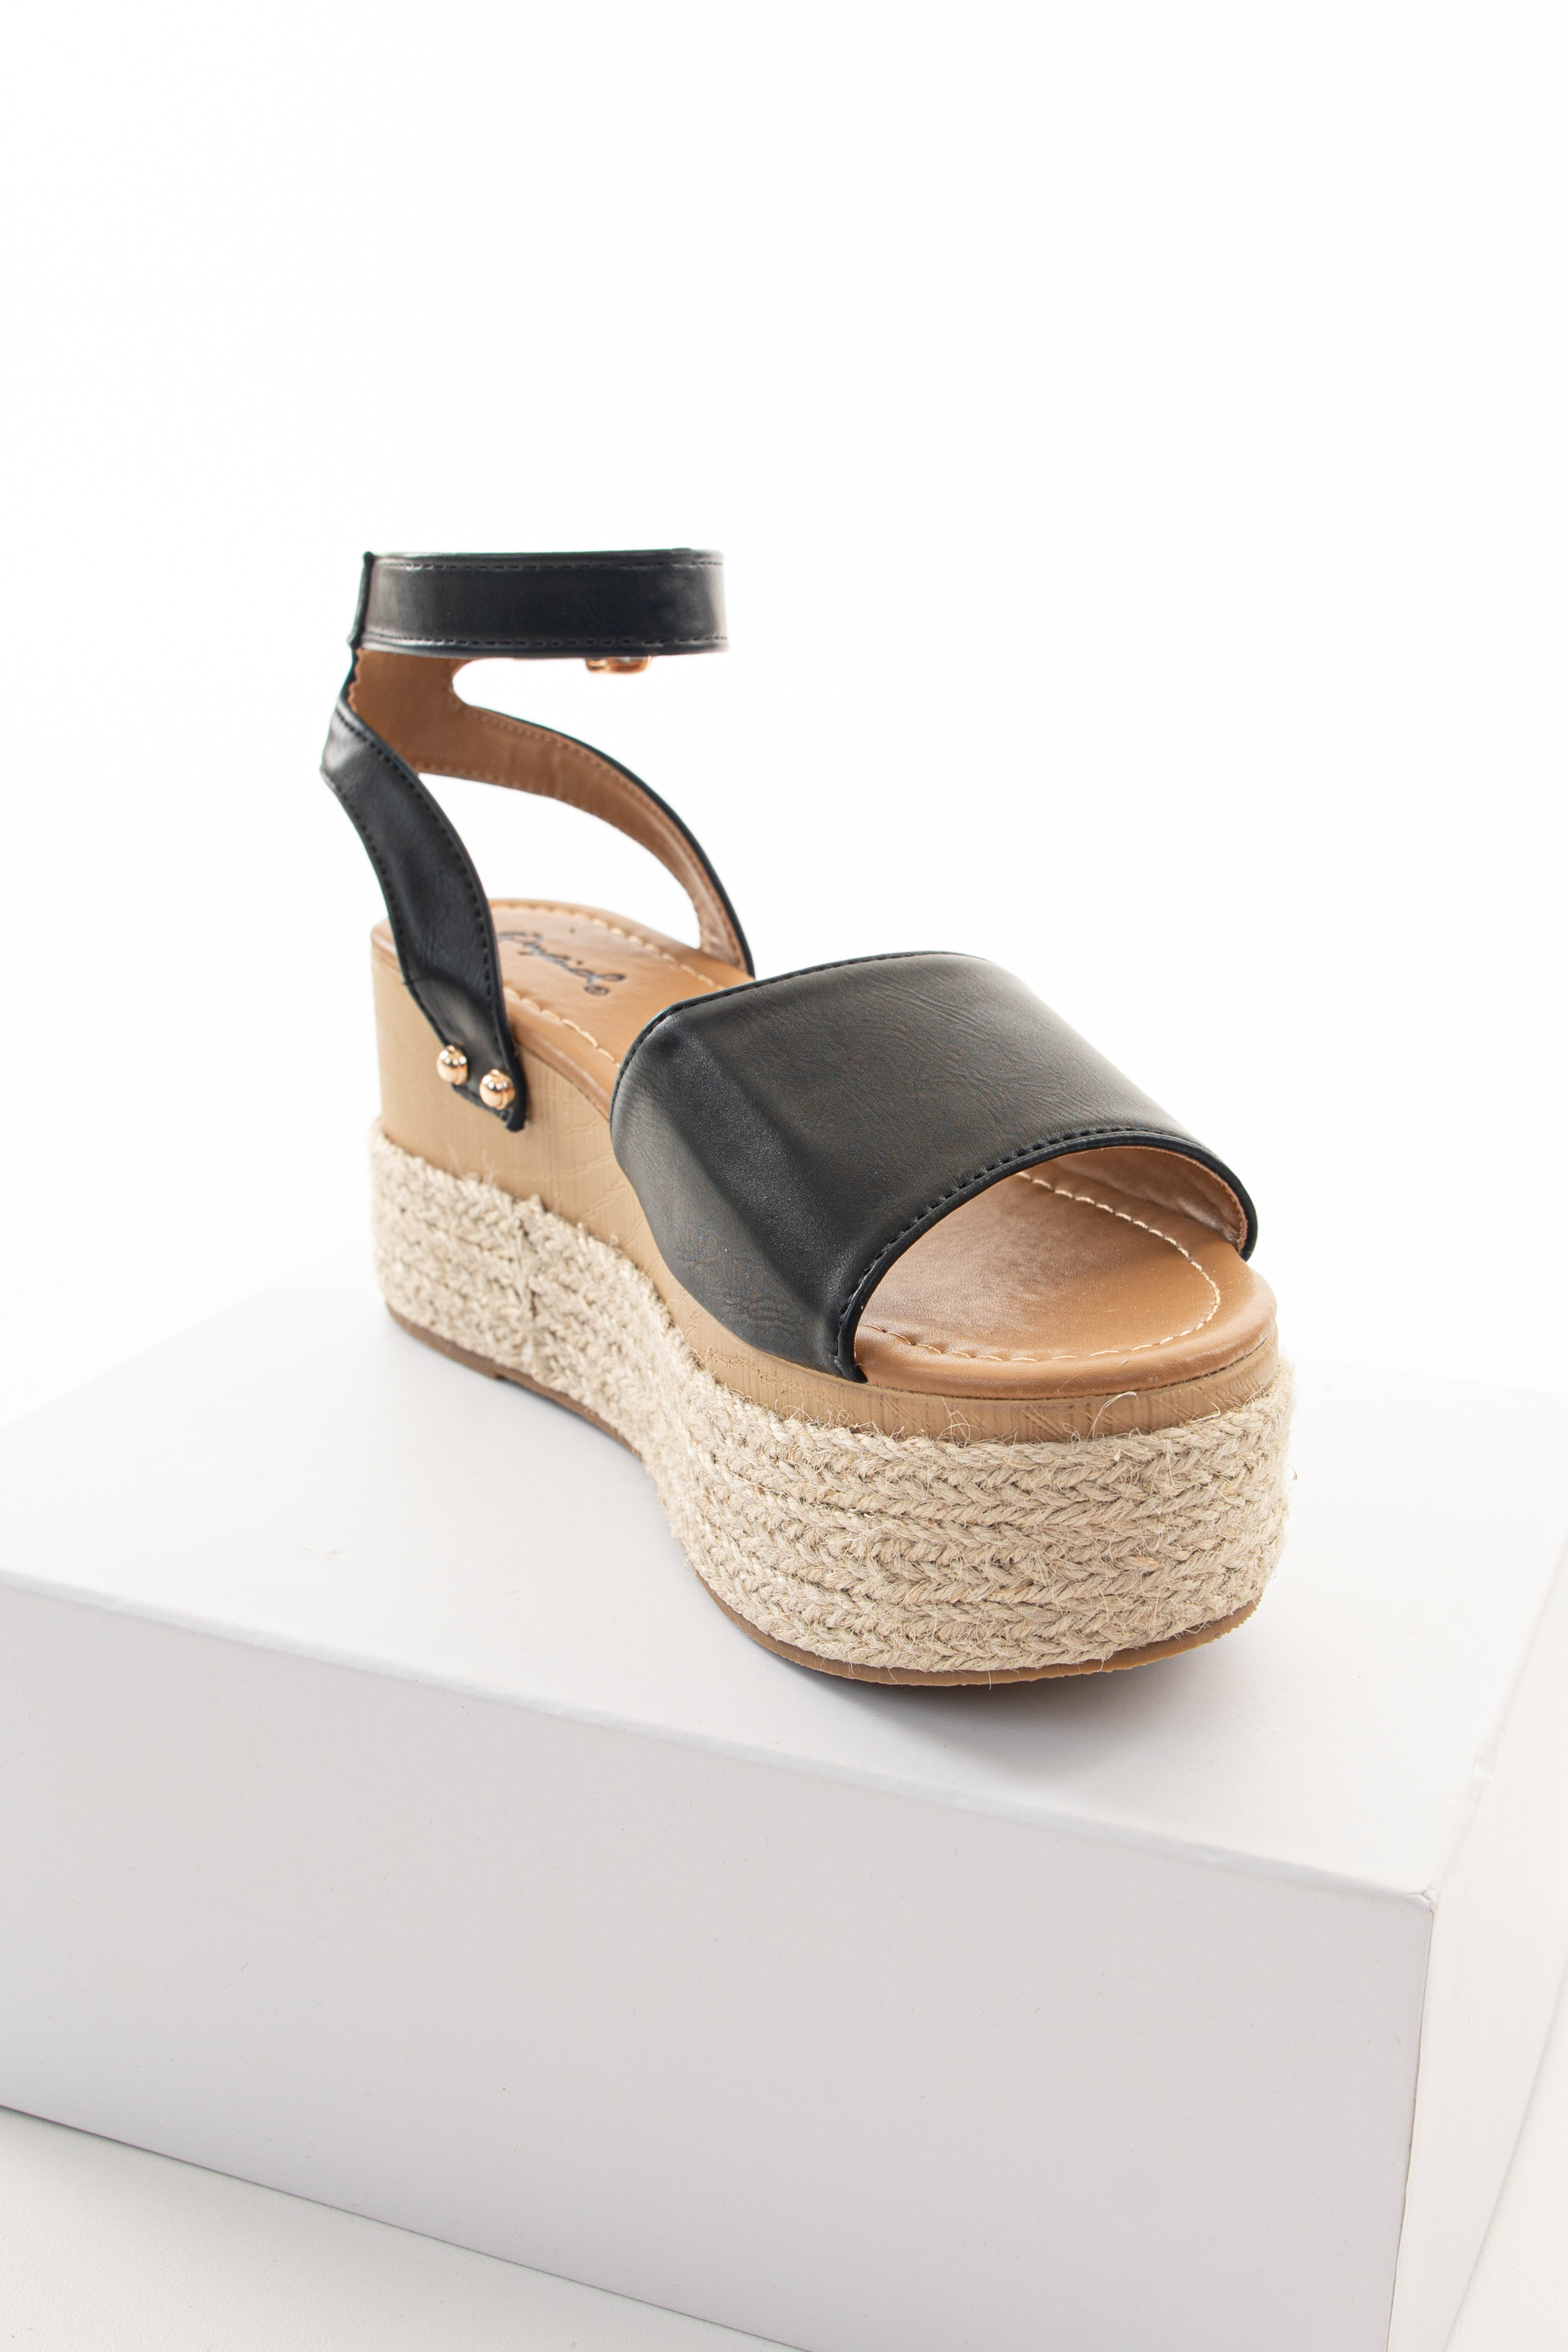 Black and Tan Espadrille Sandals with Gold Stud Details